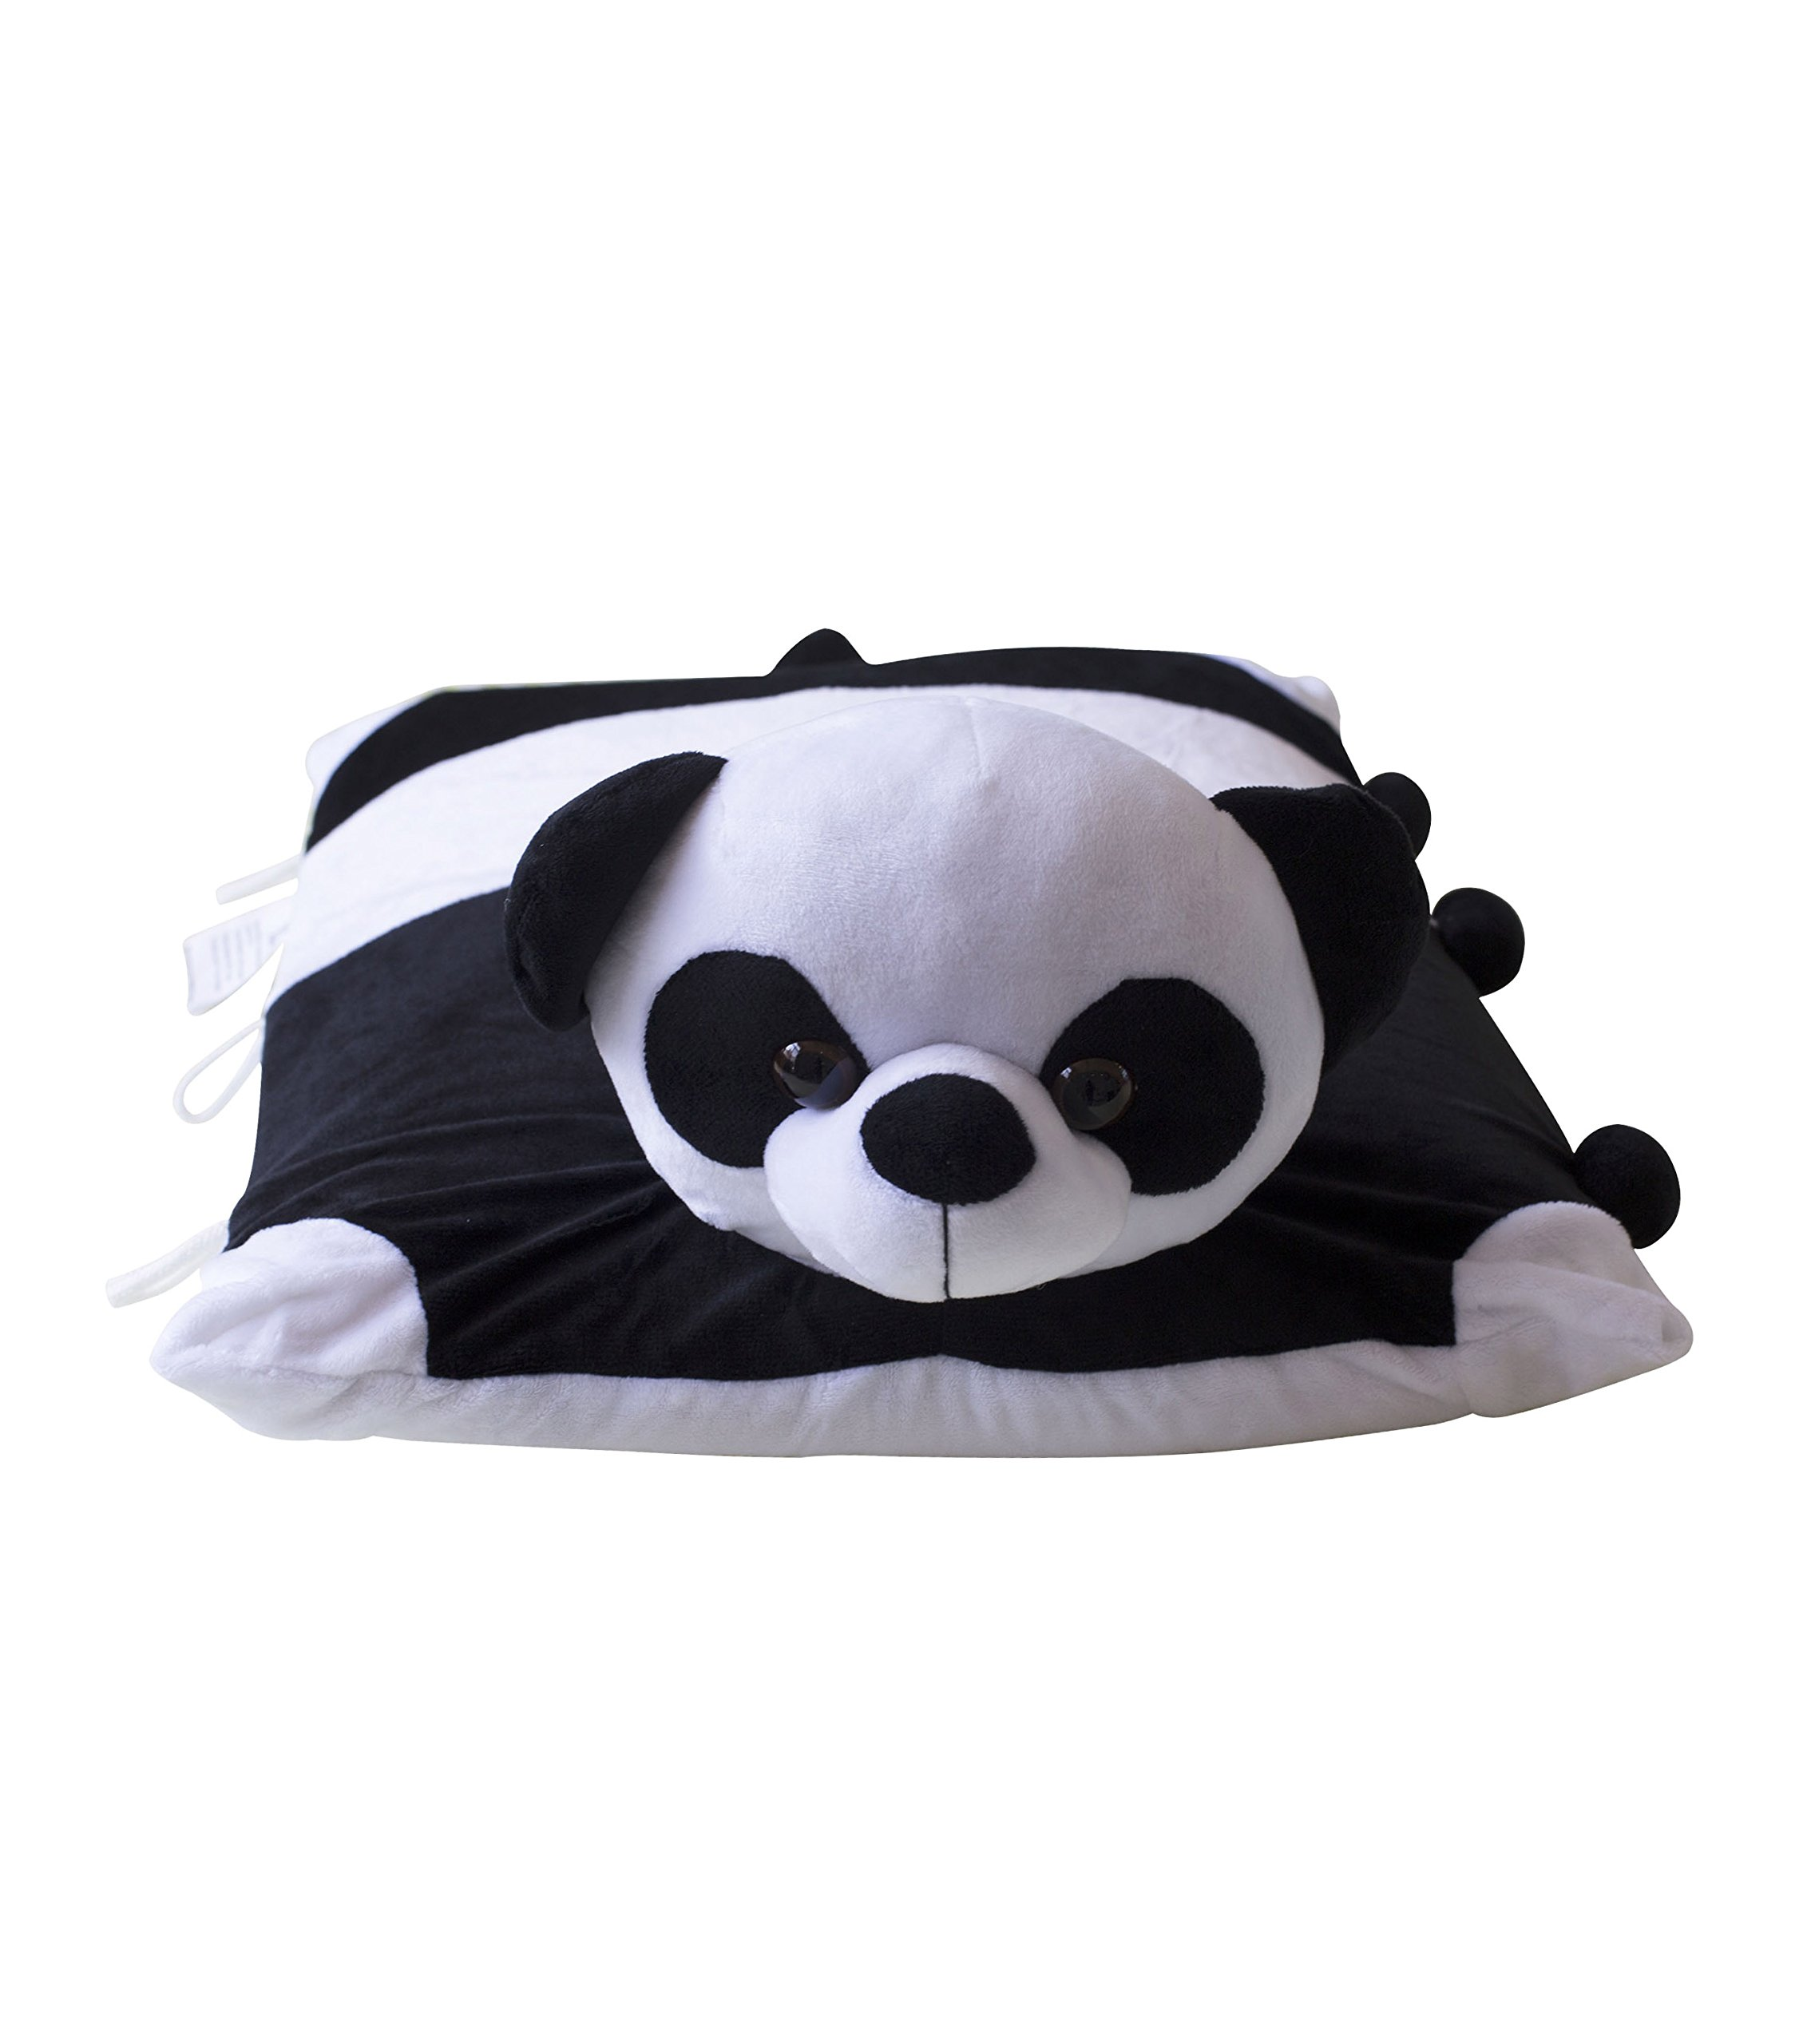 Know How 100% Animal Natural Latex Pillow with Organic Cotton Outer Covering - Standard – Hypoallergenic - Anti-mite - Relieve Cervical Spine Pain – Washable - Breathable